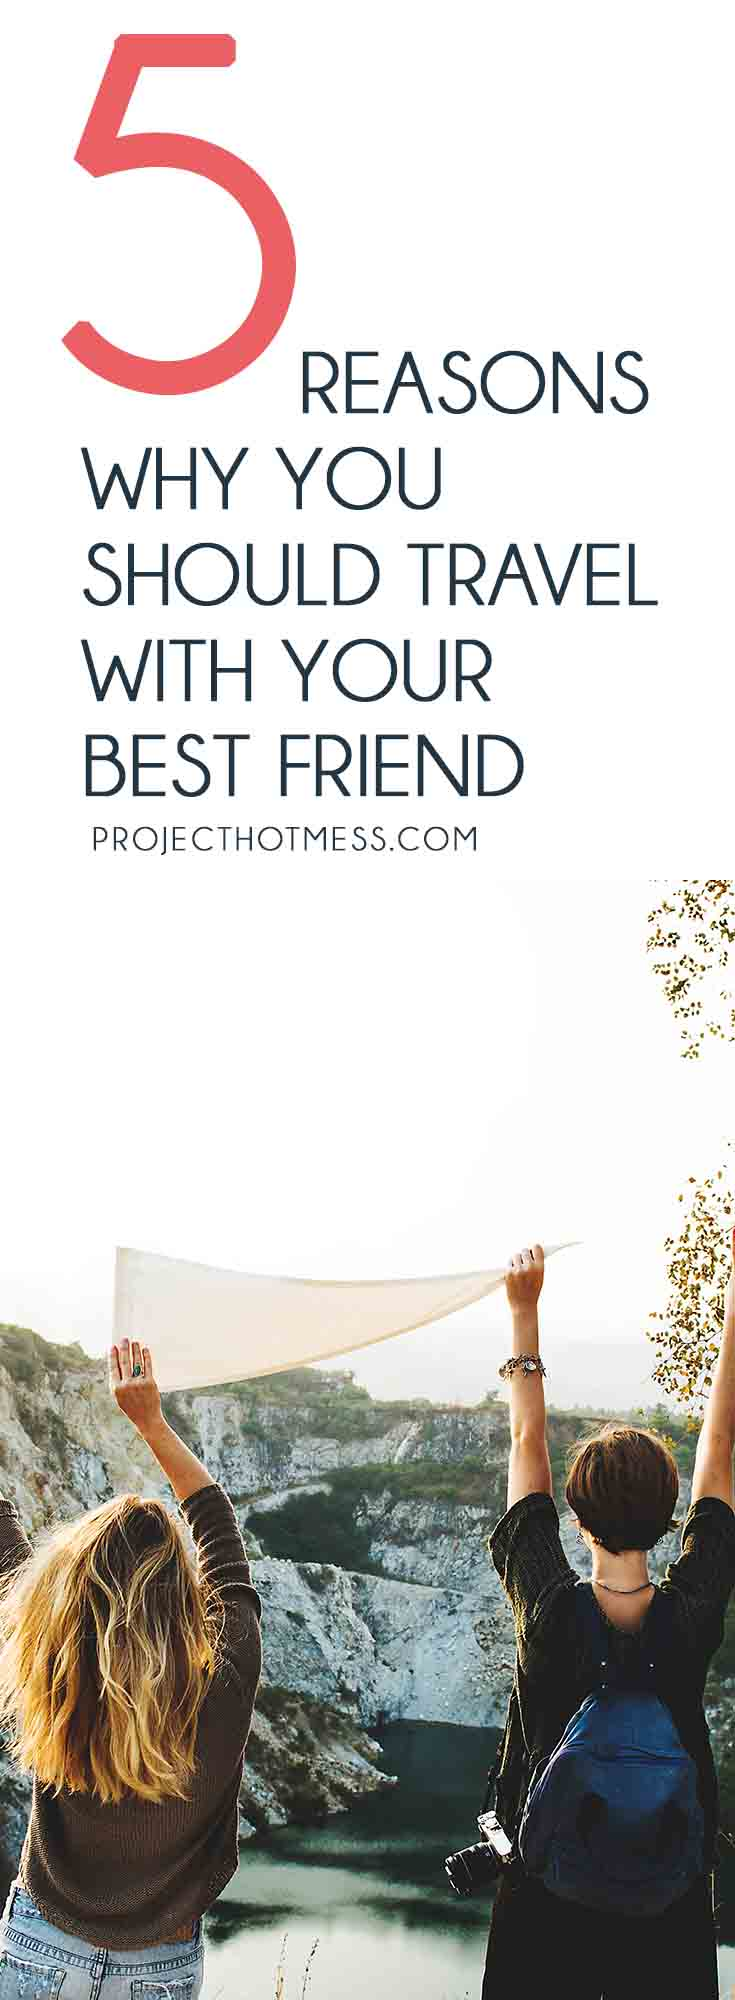 Finding a good travel partner can be tough, you don't know if you're going to get along or if you'll like the same things. So travel with your best friend! Friends | Friendships | Travel | Travel Tips | Travelling When Young | Travelling With Friends | Travel Hacks | Travel Advice